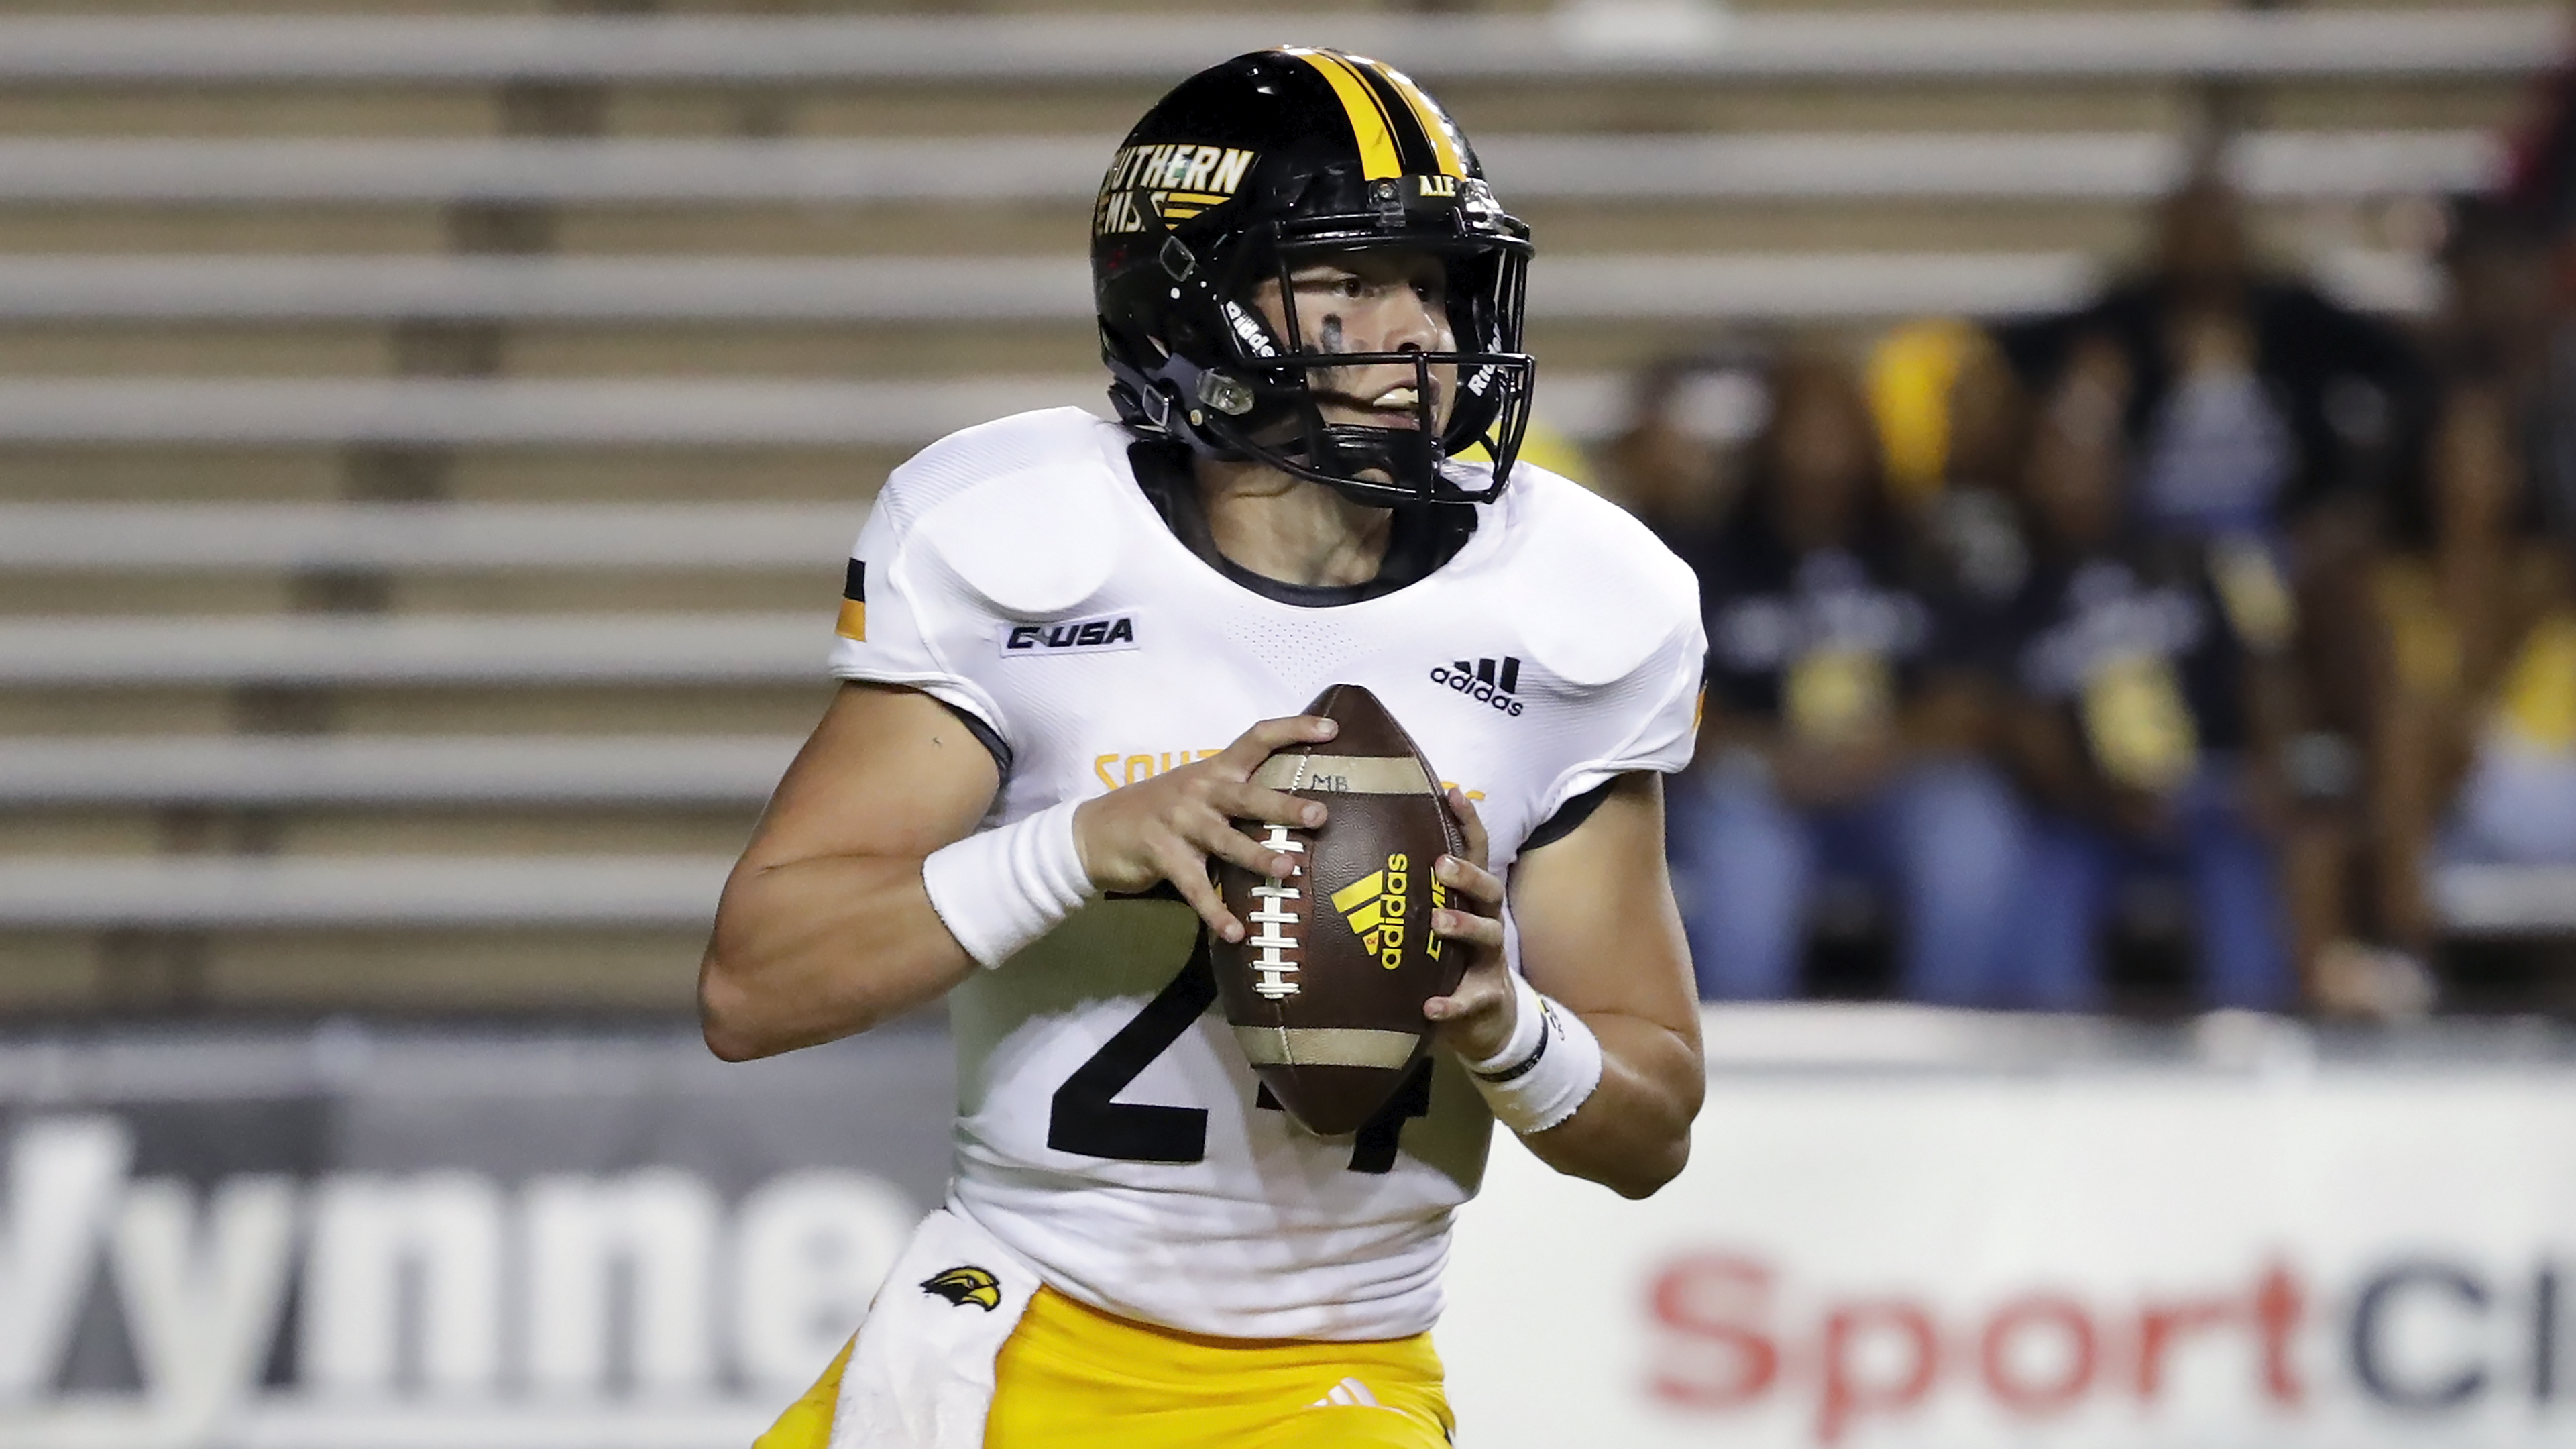 Southern Mississippi quarterback Jake Lange during an NCAA college football game against Rice.